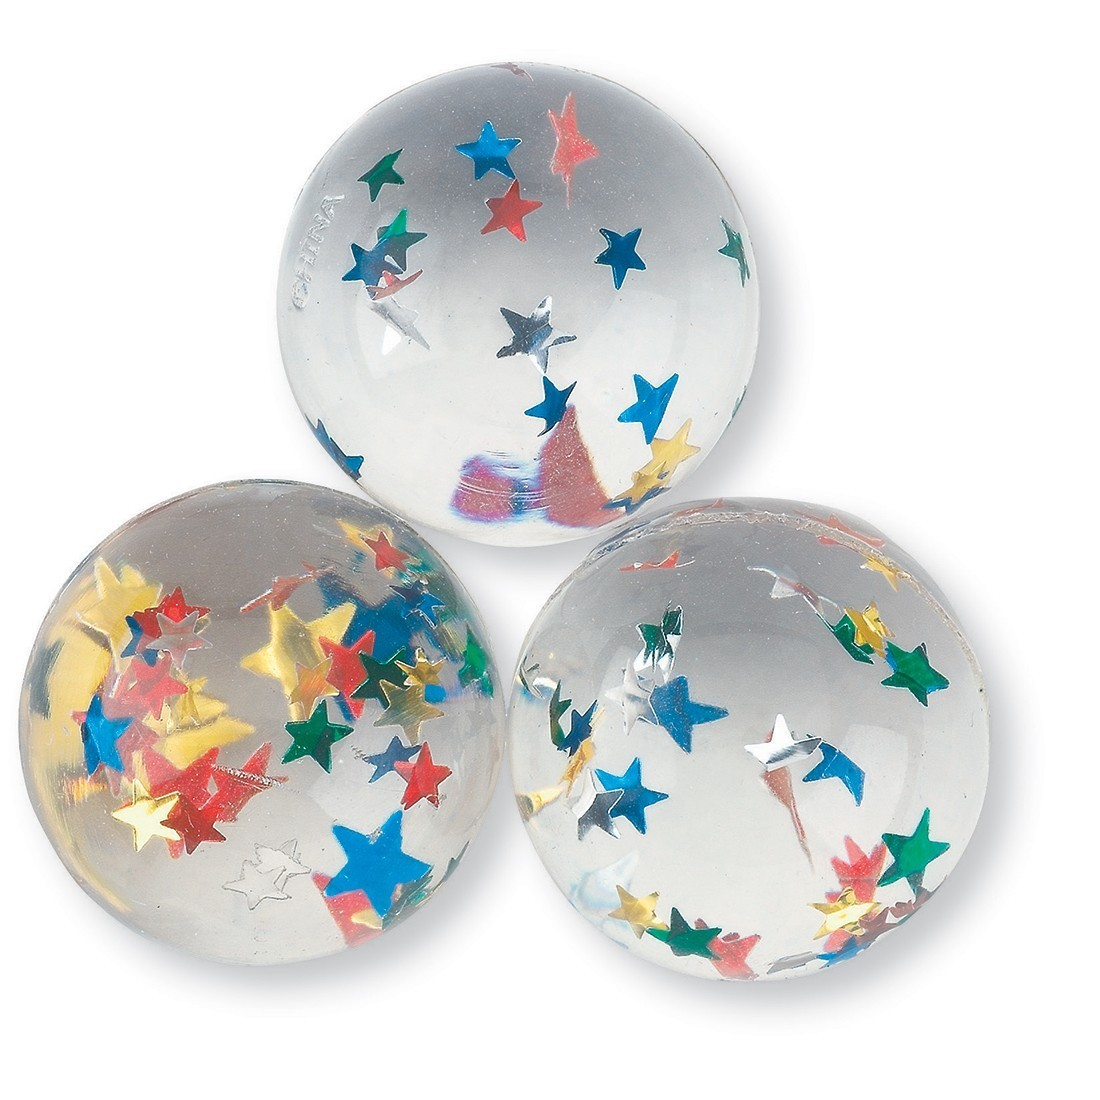 33mm Star Confetti Bouncing Balls [image]